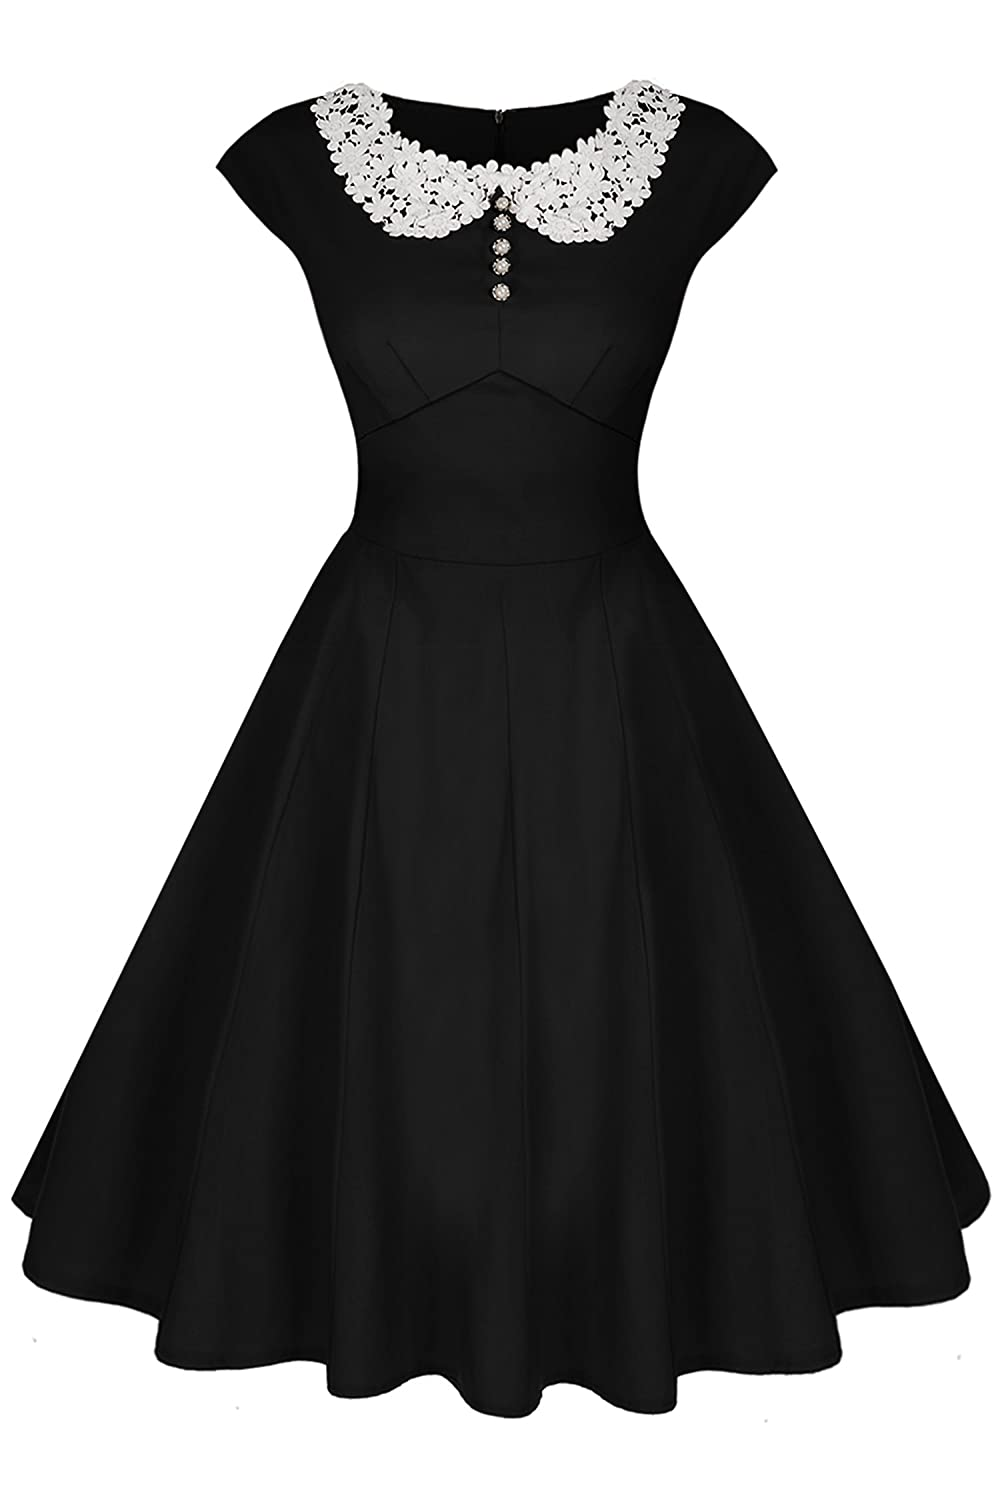 1950s Dresses, 50s Dresses | 1950s Style Dresses Audrey Hepburn Style 1940s Rockabilly Evening Dress  AT vintagedancer.com